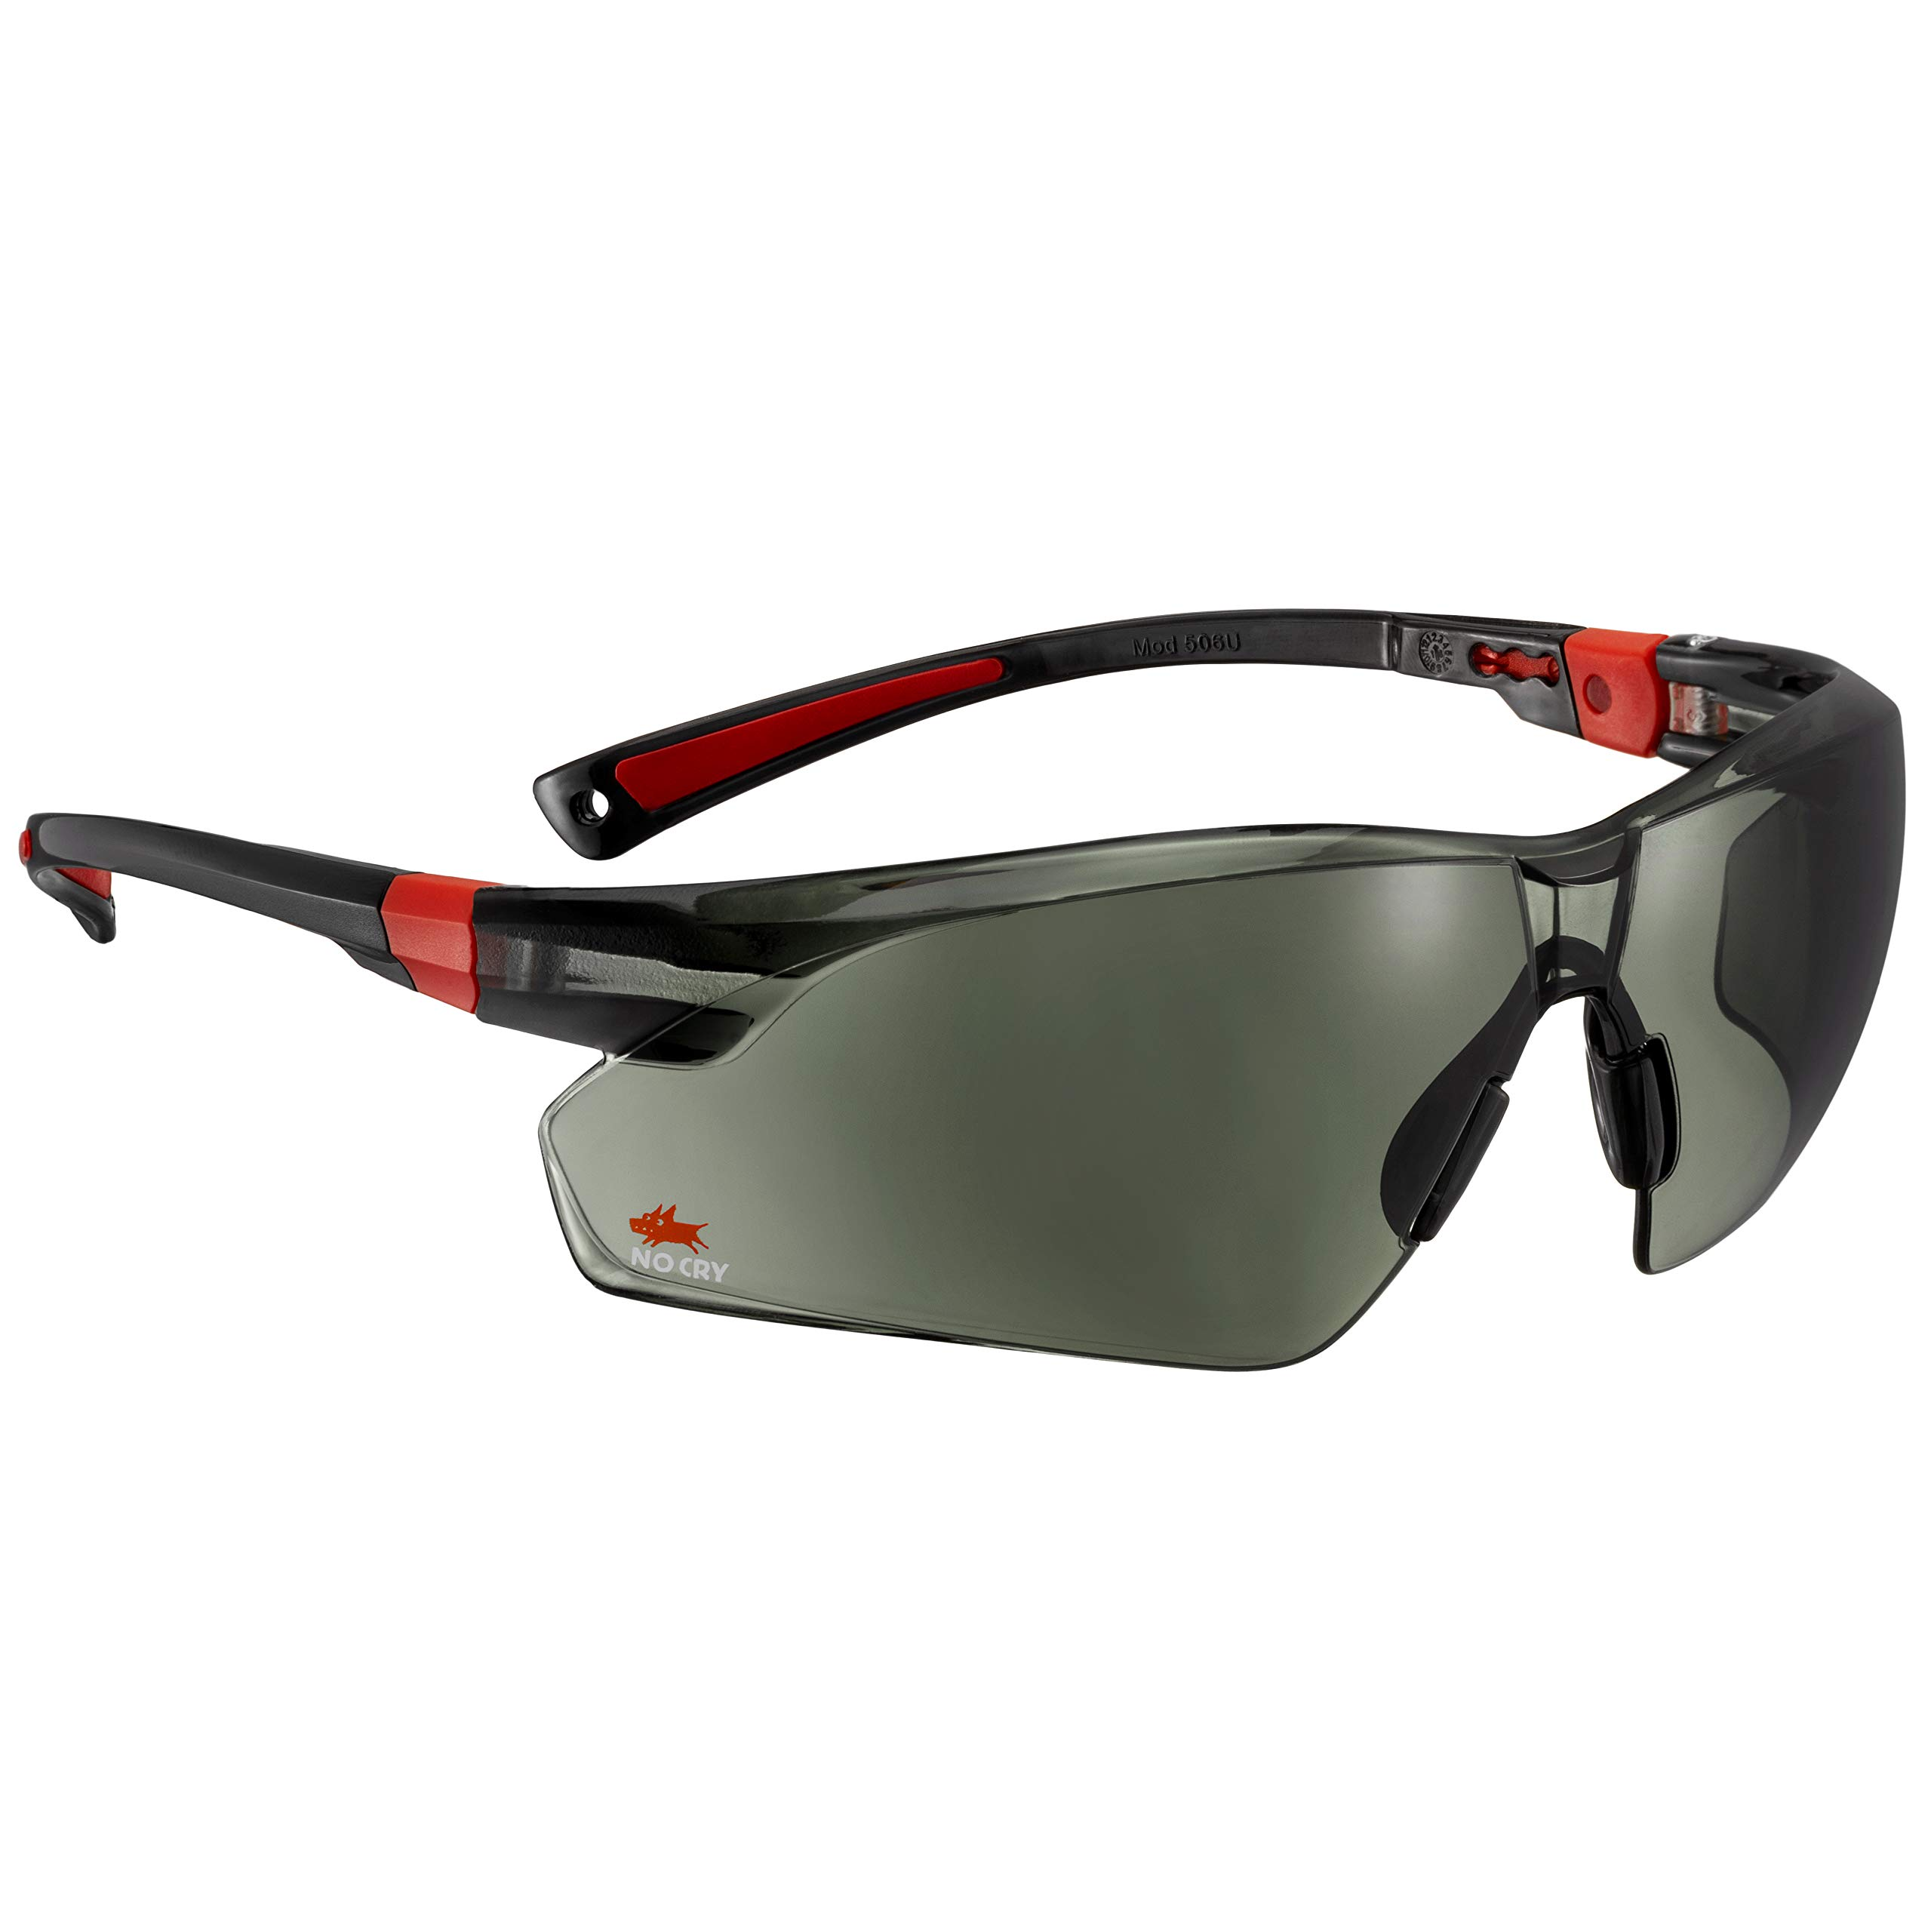 NoCry Work & Sports Safety Sunglasses - with Green Tinted Anti Scratch Wrap-Around Lenses, Non-Slip Grips, UV 400 Protection, Adjustable Fit, Black & Red Frames by NoCry